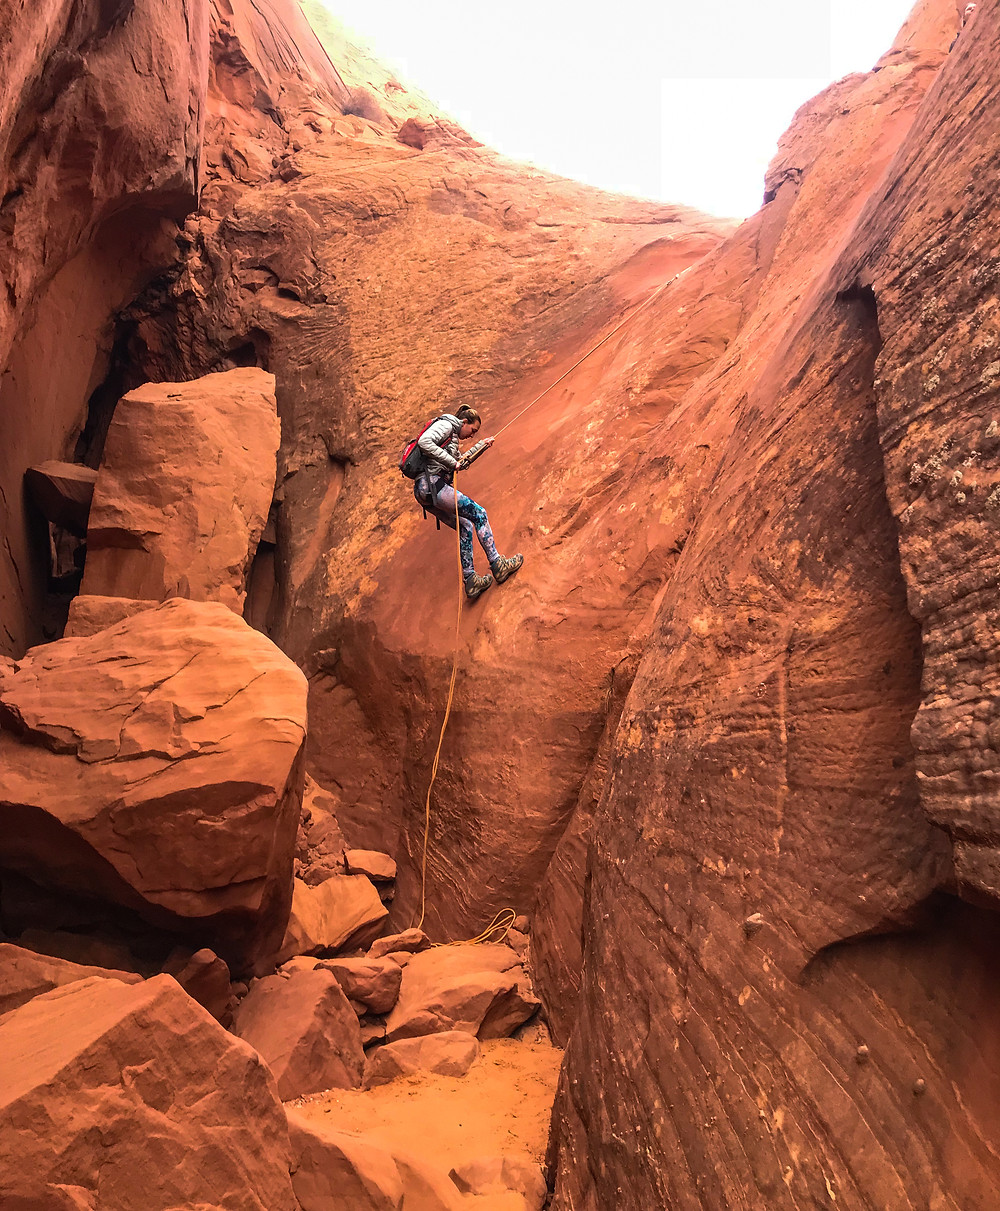 Girl rappelling down a sandstone wall